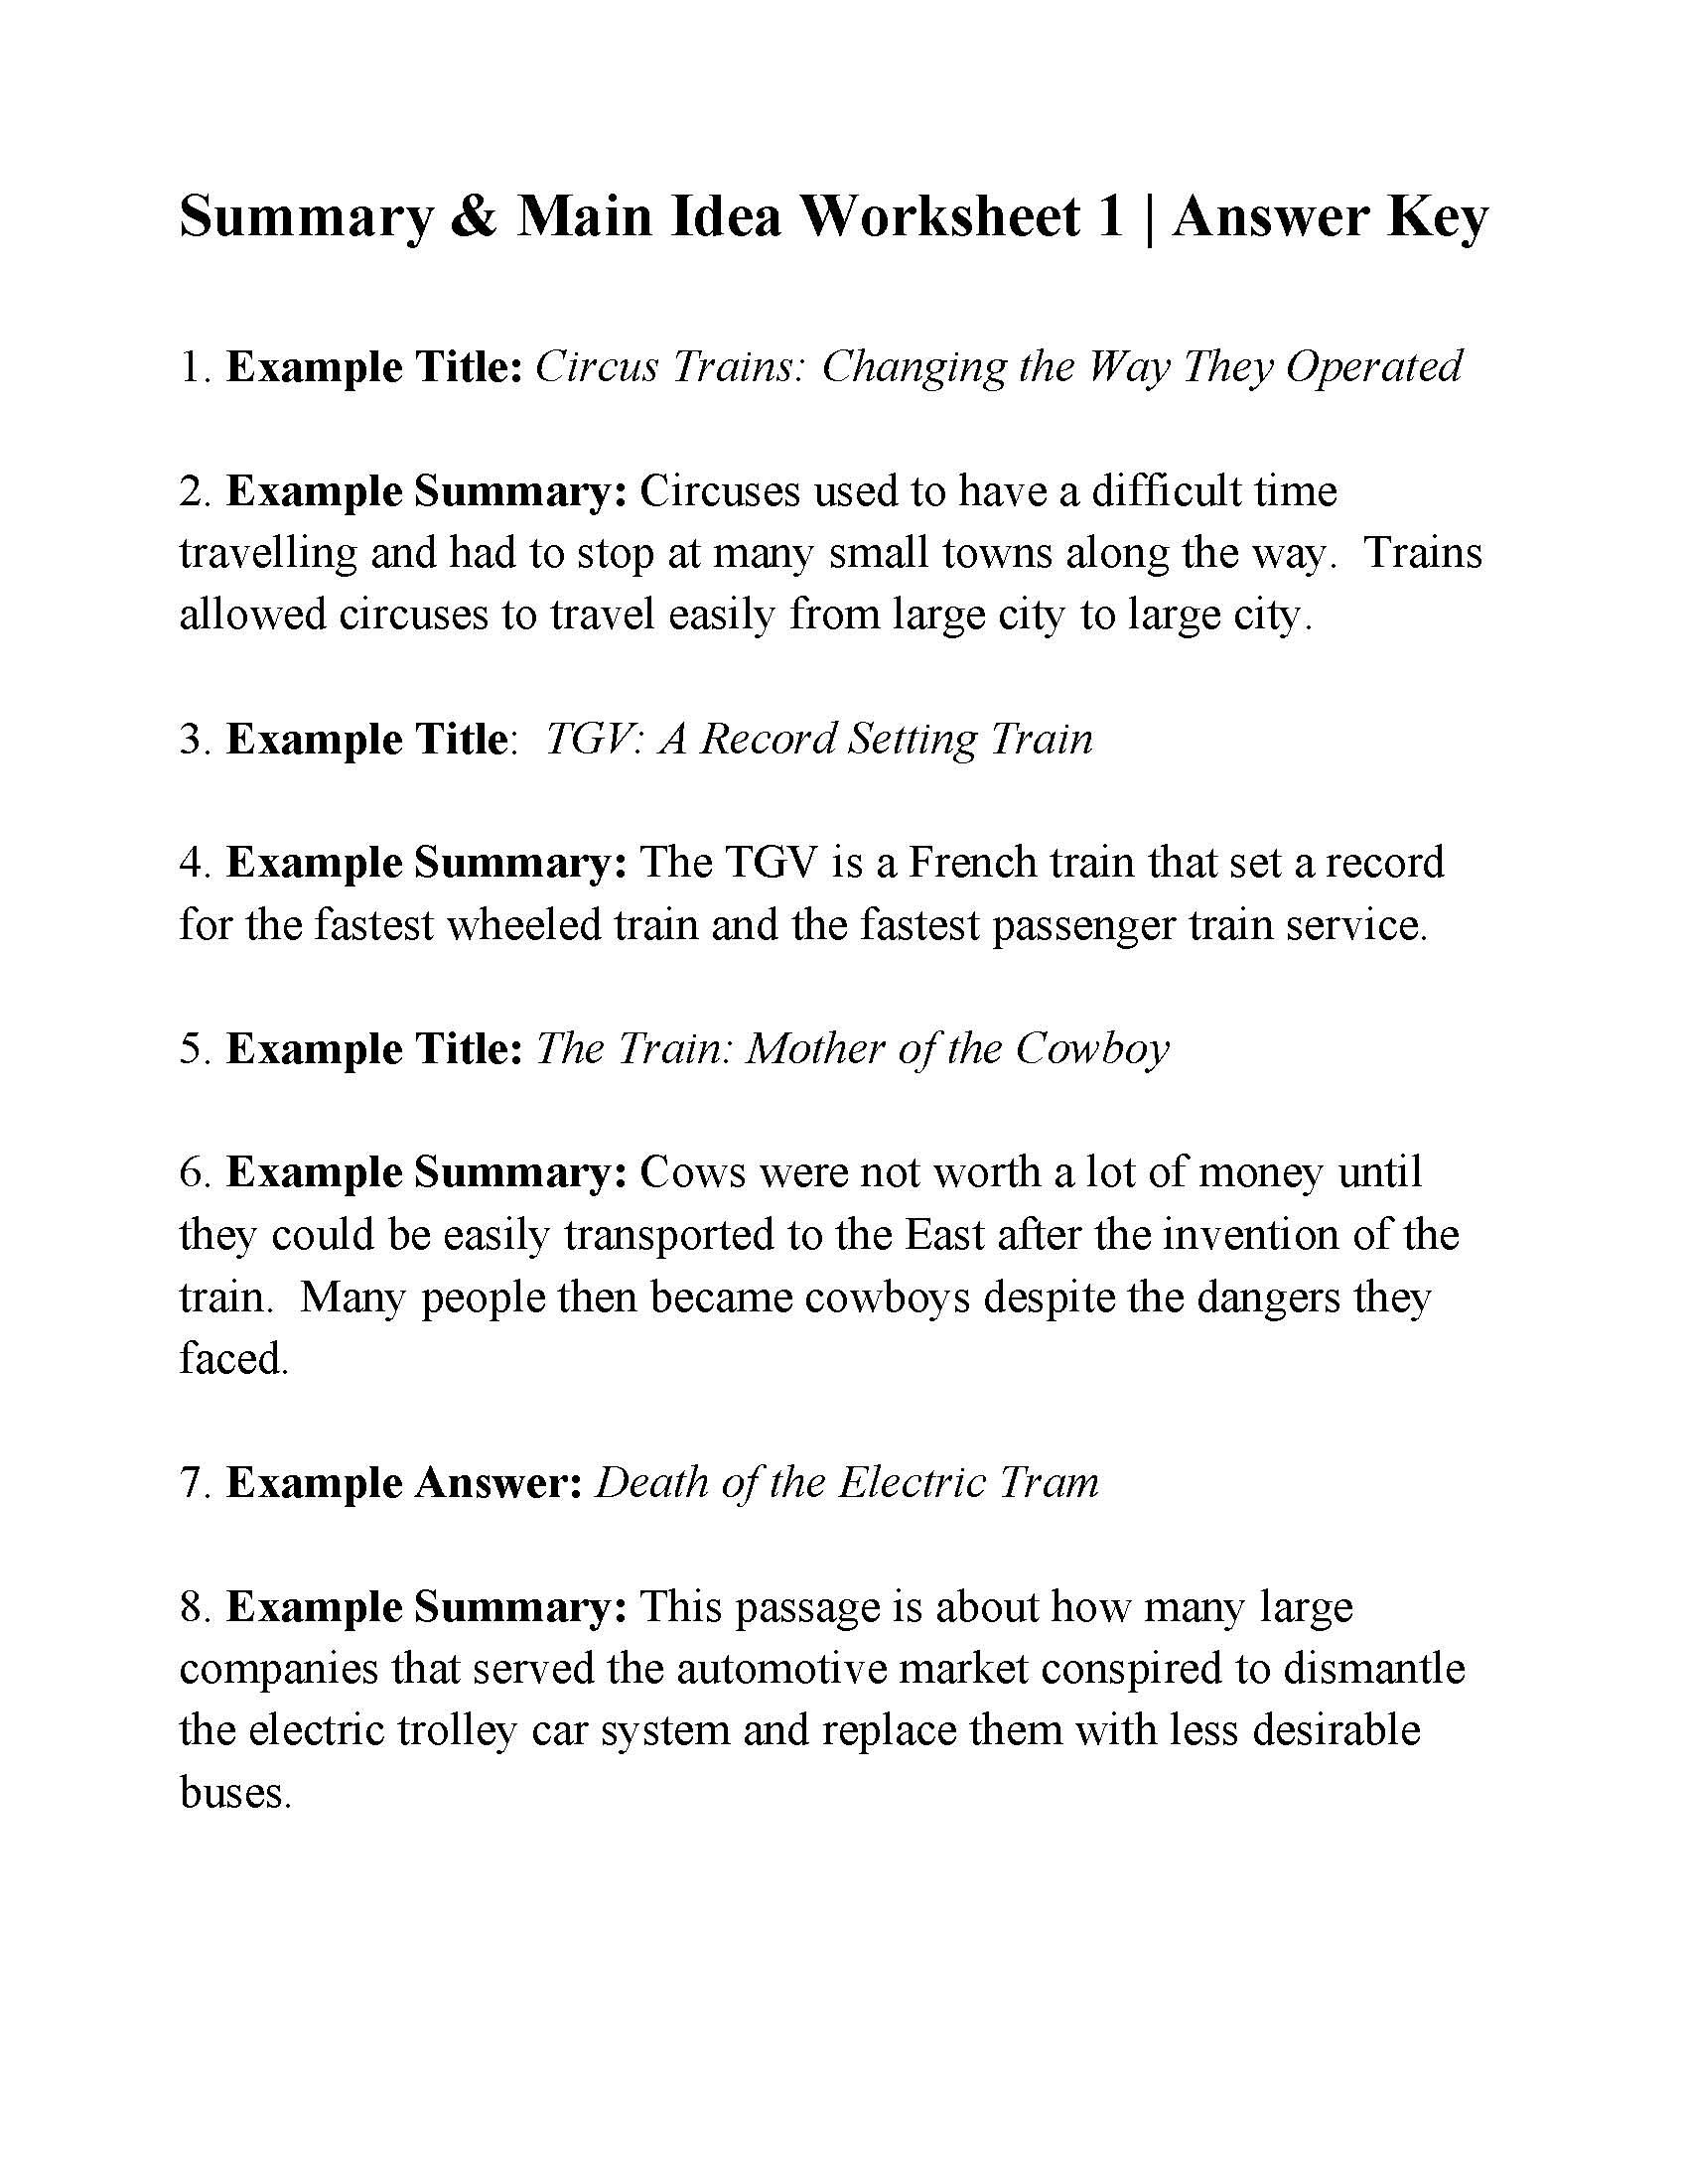 This Is The Answer Key For The Summary And Main Idea Worksheet 1 Main Idea Worksheet Money Worksheets 2nd Grade Worksheets [ 2200 x 1700 Pixel ]